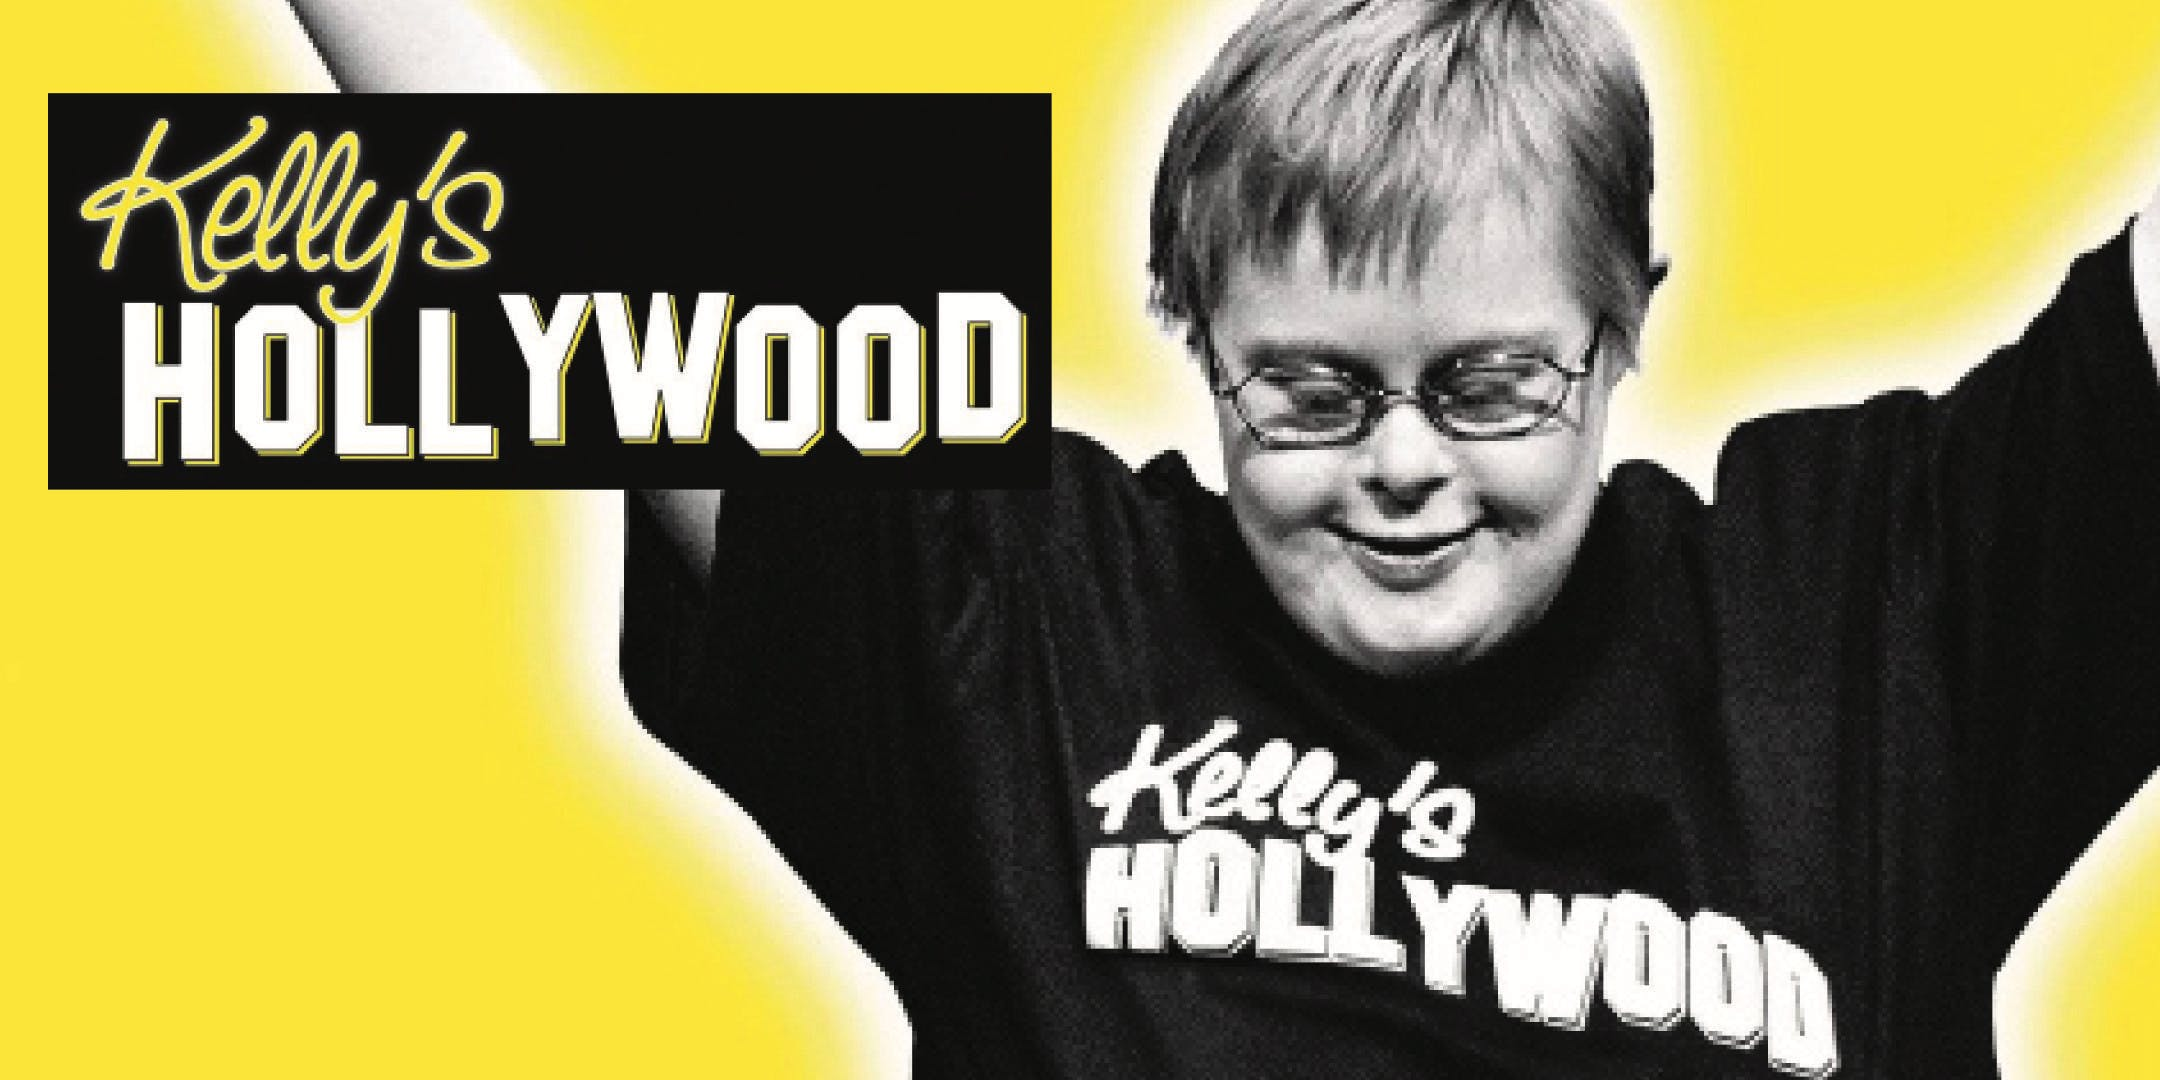 Kelly's Hollywood Promo